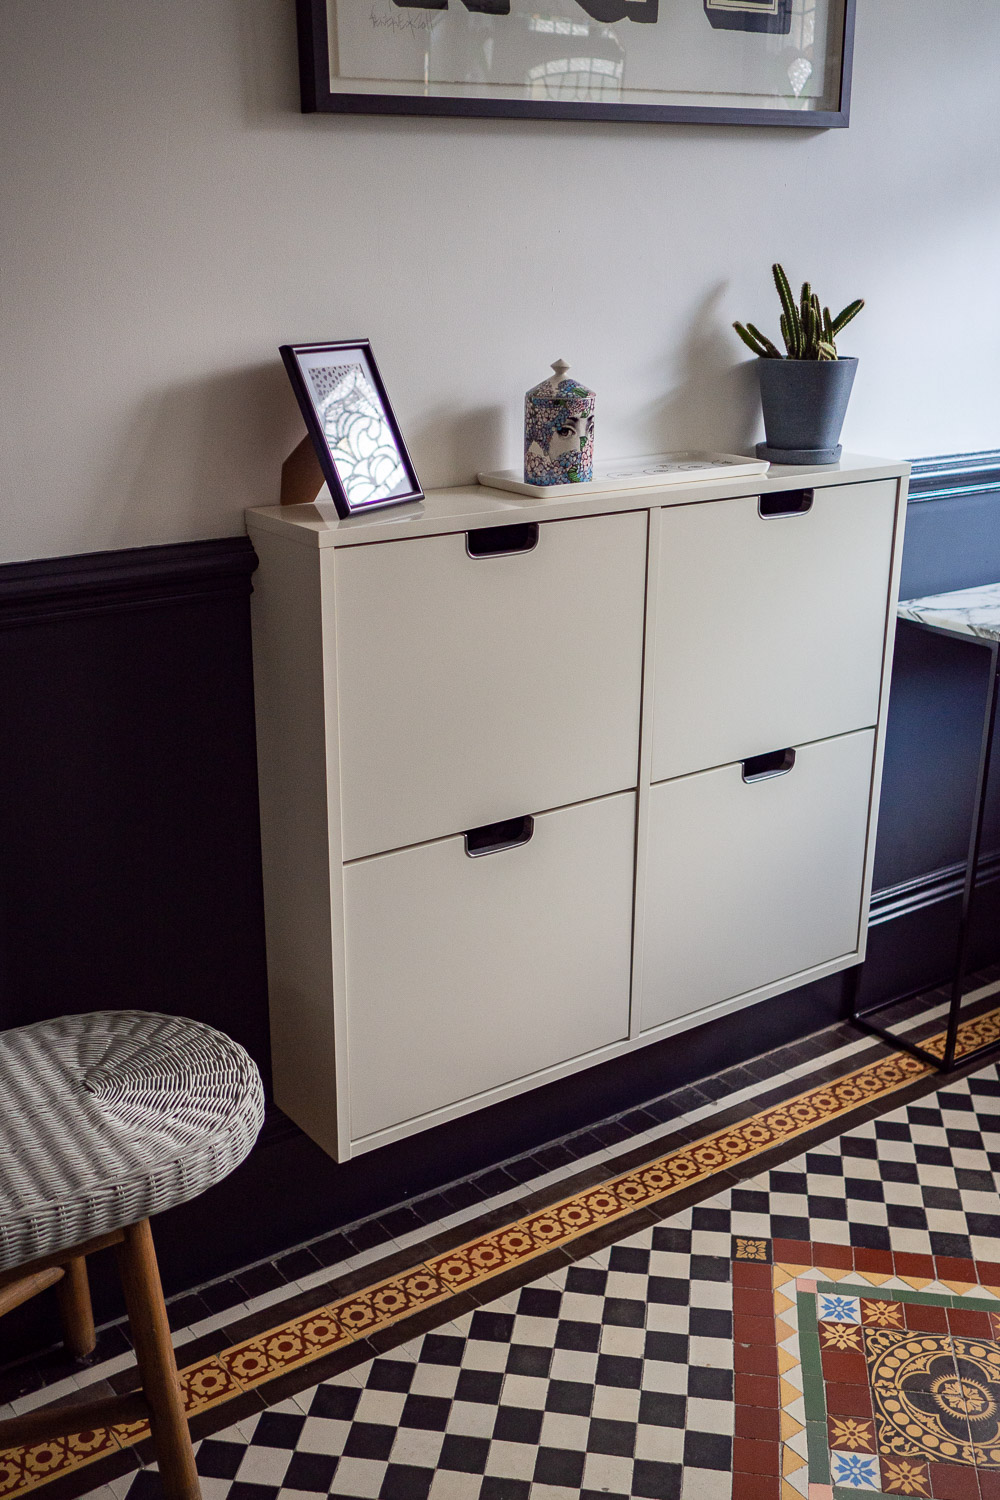 White Ikea STÄLL shoe storage cabinet. Fixed to the wall without its feet so that the skirting board isn't covered up.